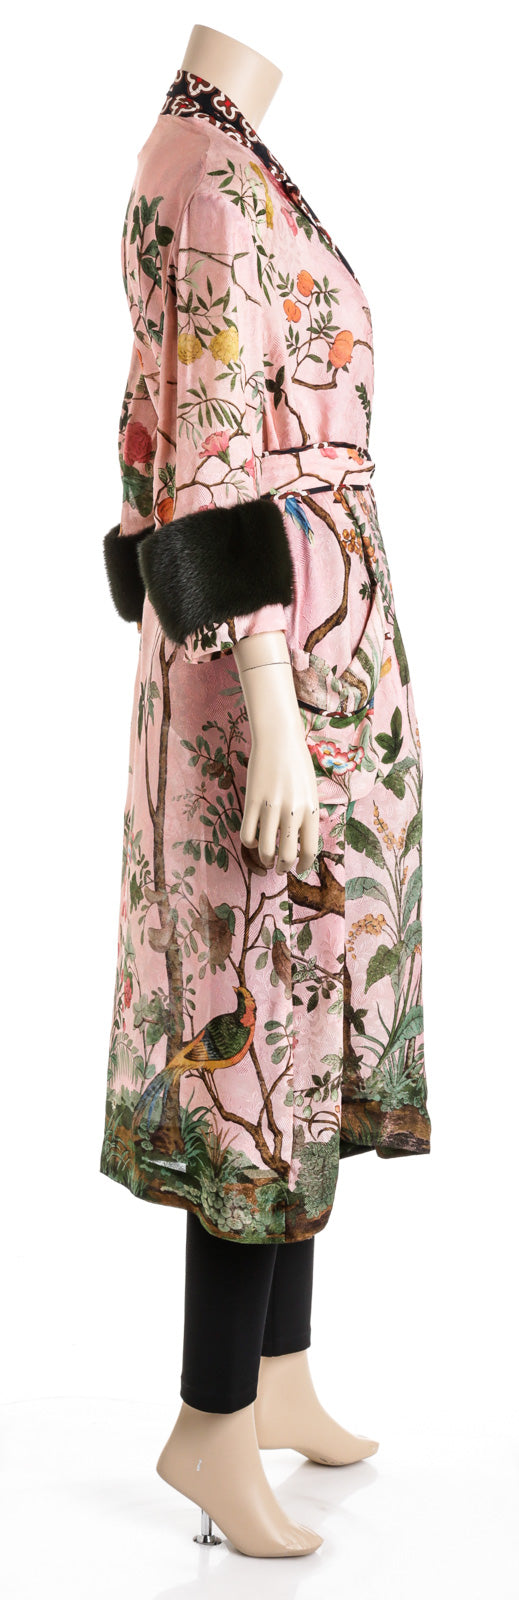 Gucci Floral Pink Coat with Mink Cuffs  (Size 36)